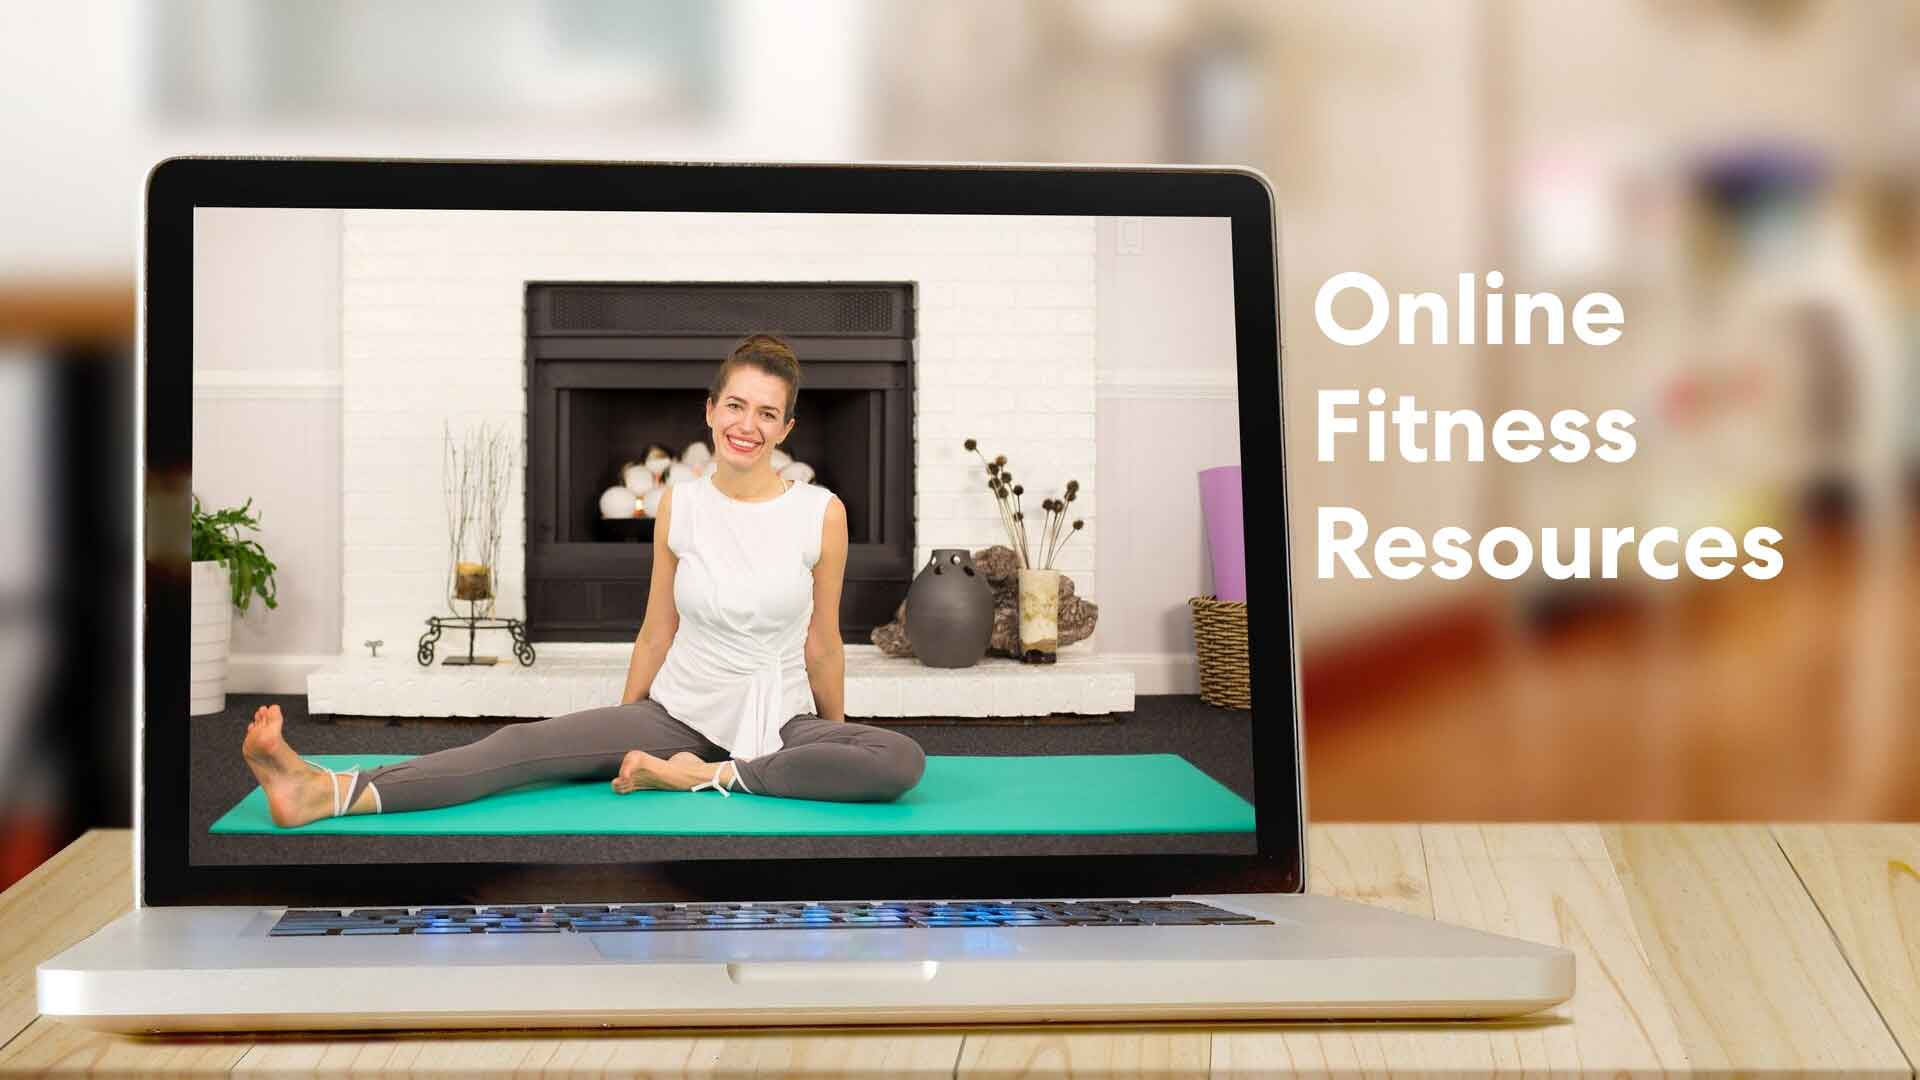 image relates to online fitness